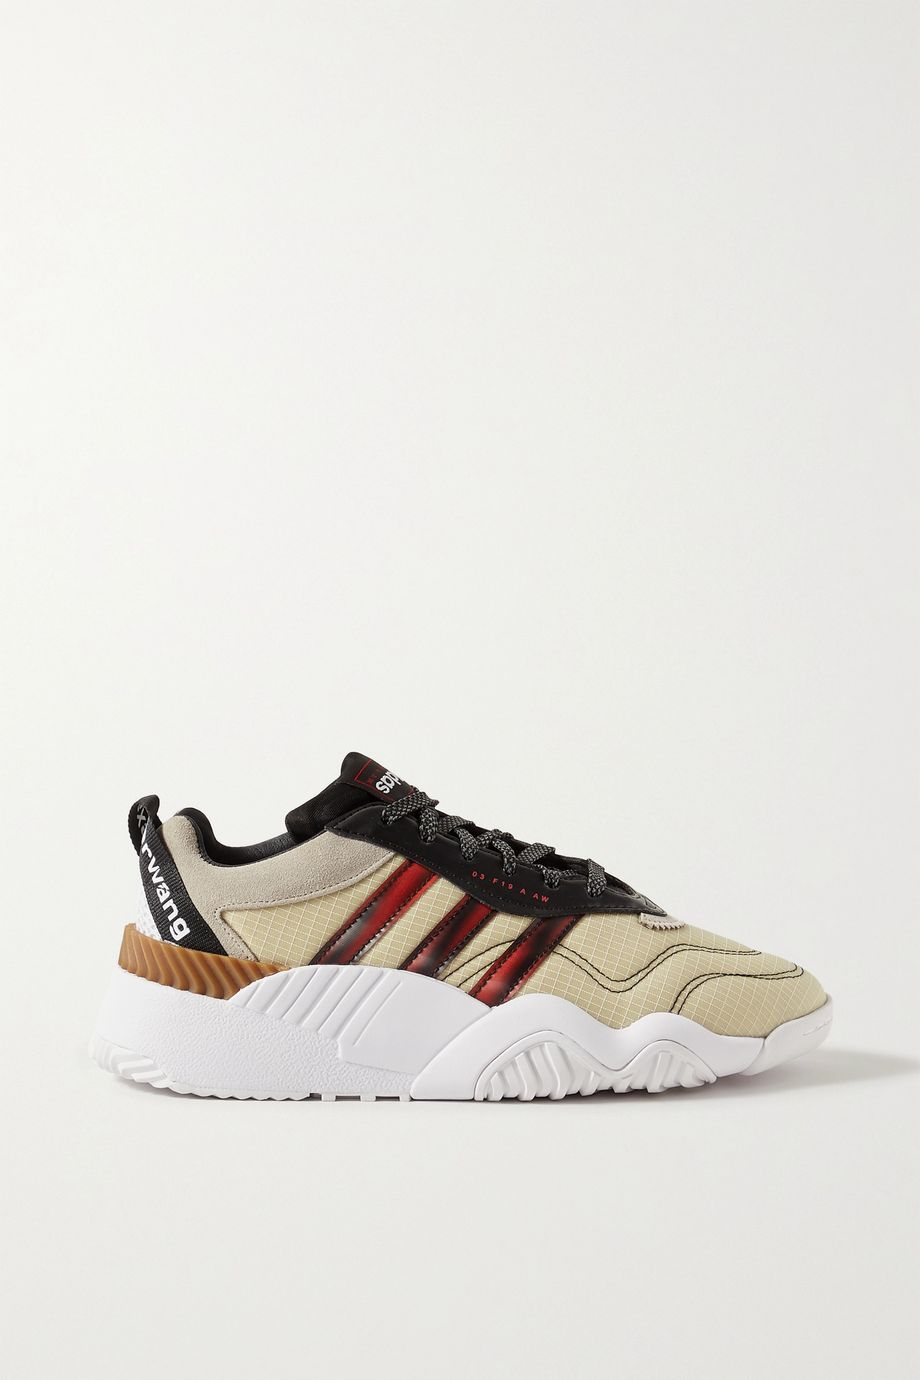 adidas Originals By Alexander Wang Turnout suede and rubber-trimmed ripstop sneakers